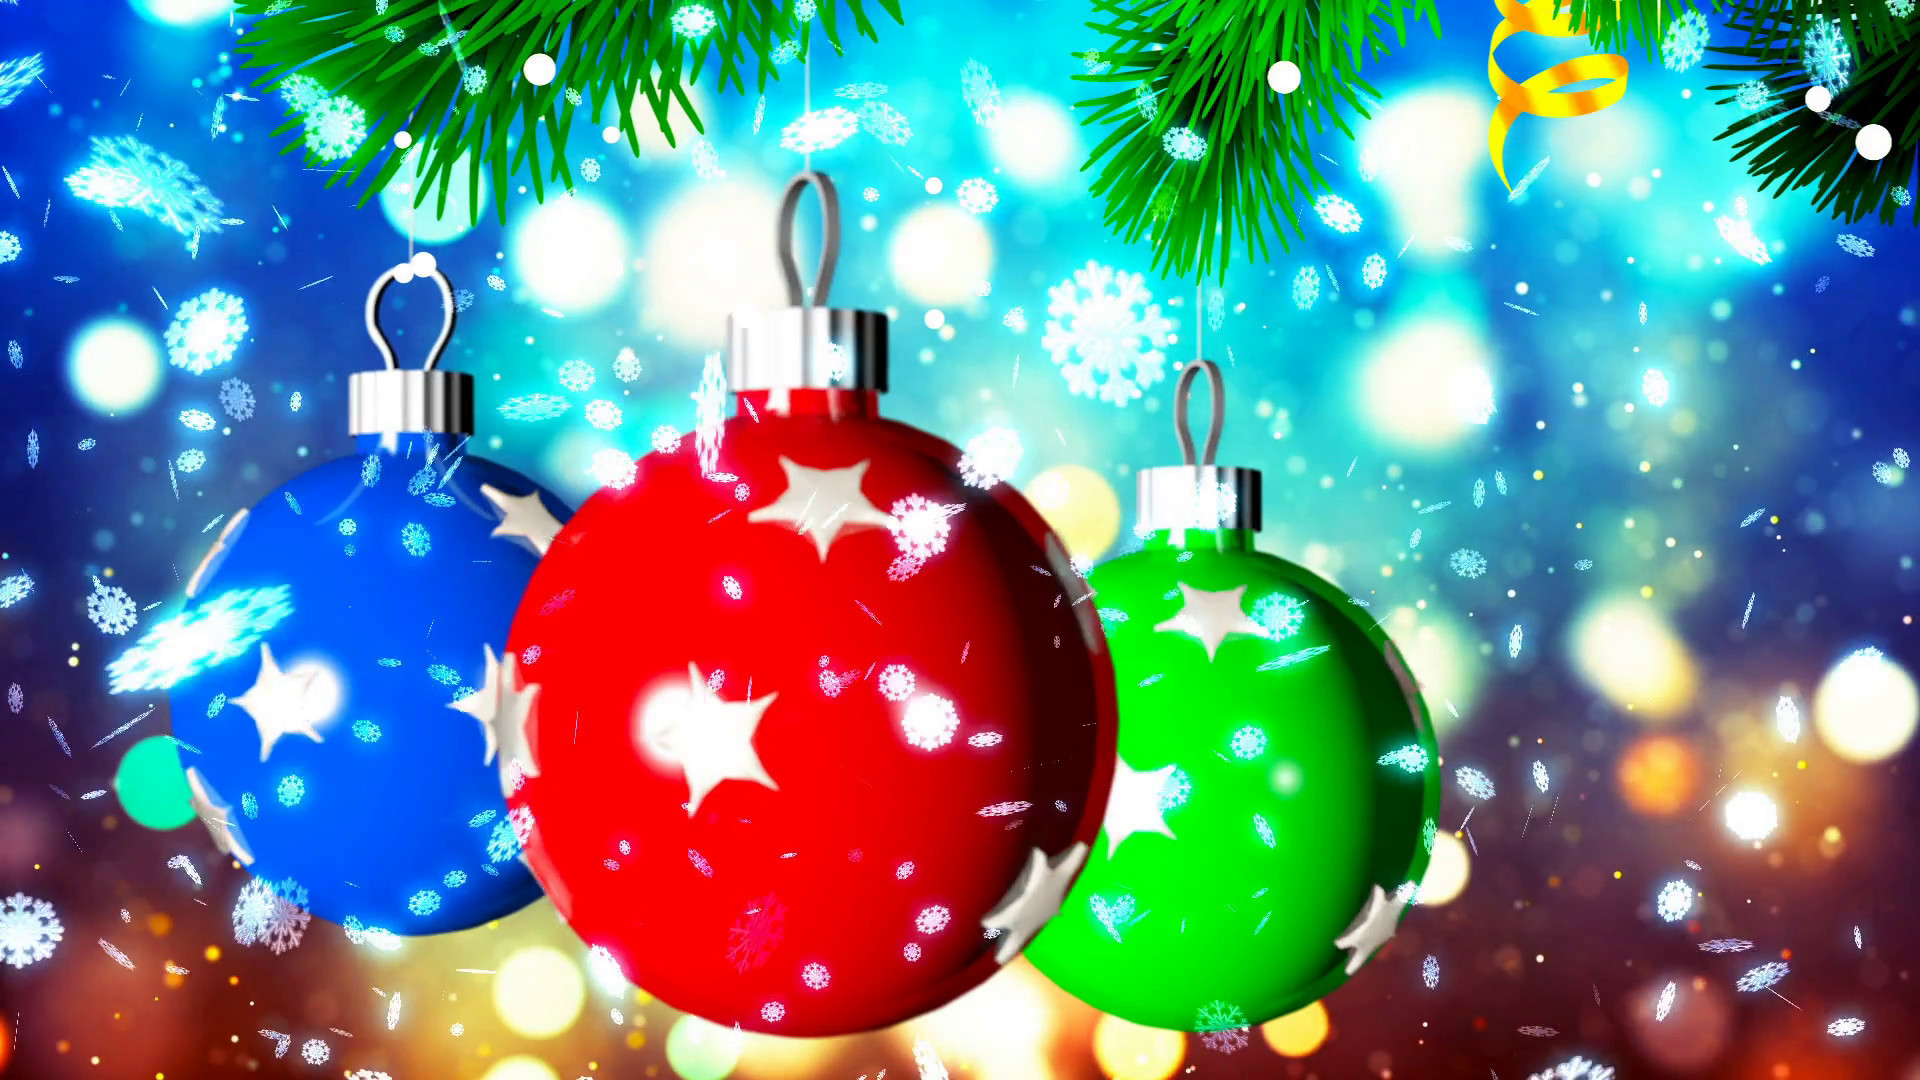 1920x1080  1920x1200 tags-christmas-abstract-xmas-background-design- backgrounds